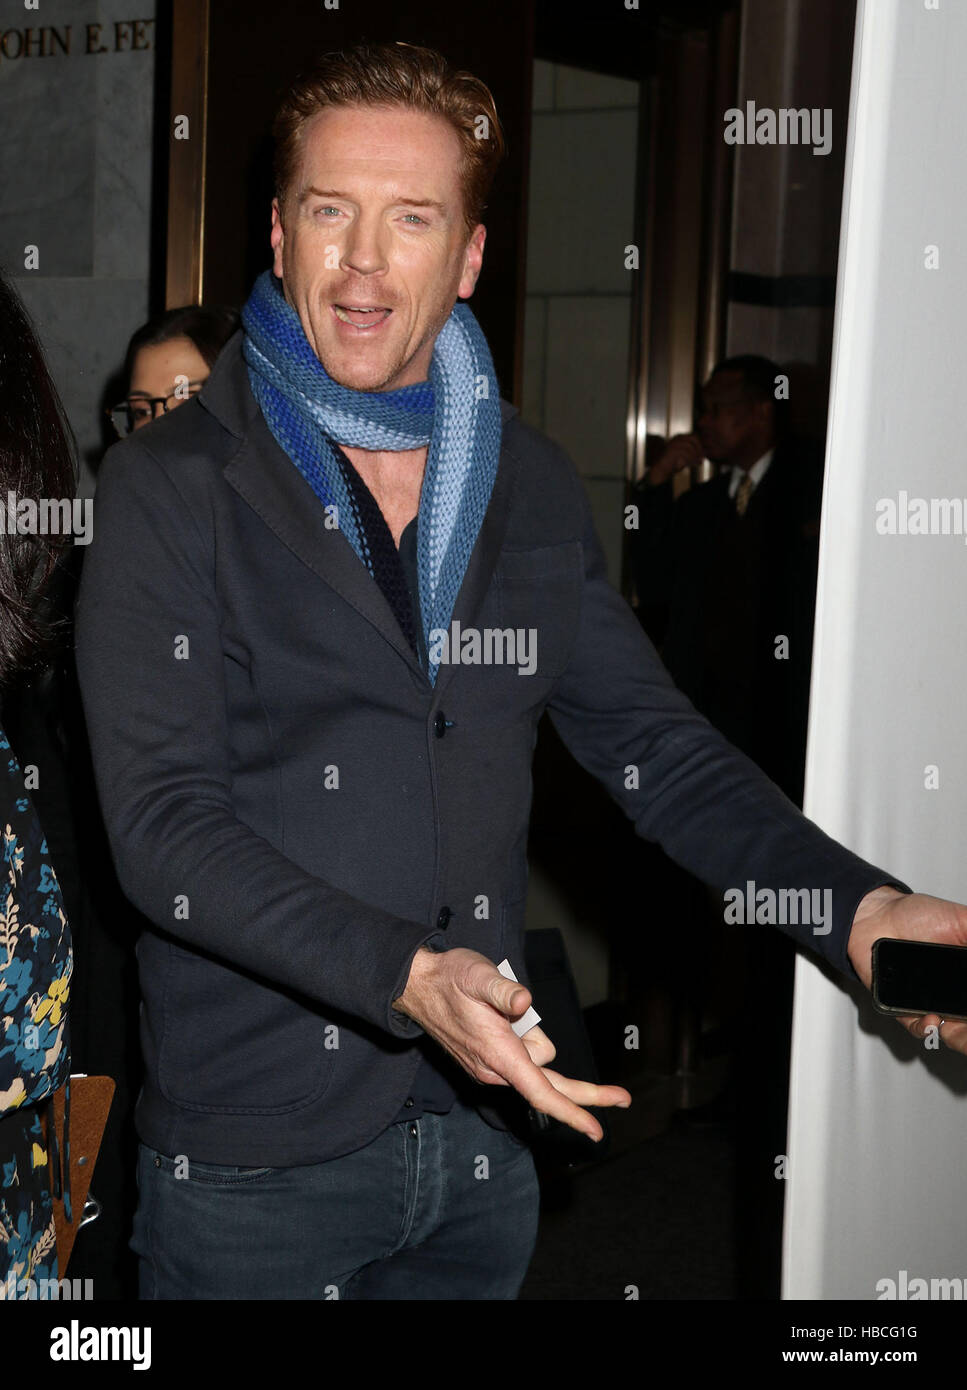 New York, USA. 5th Dec, 2016. Actor DAMIAN LEWIS attends The Paley Center for Media Presents: 'Billions' - Stock Image